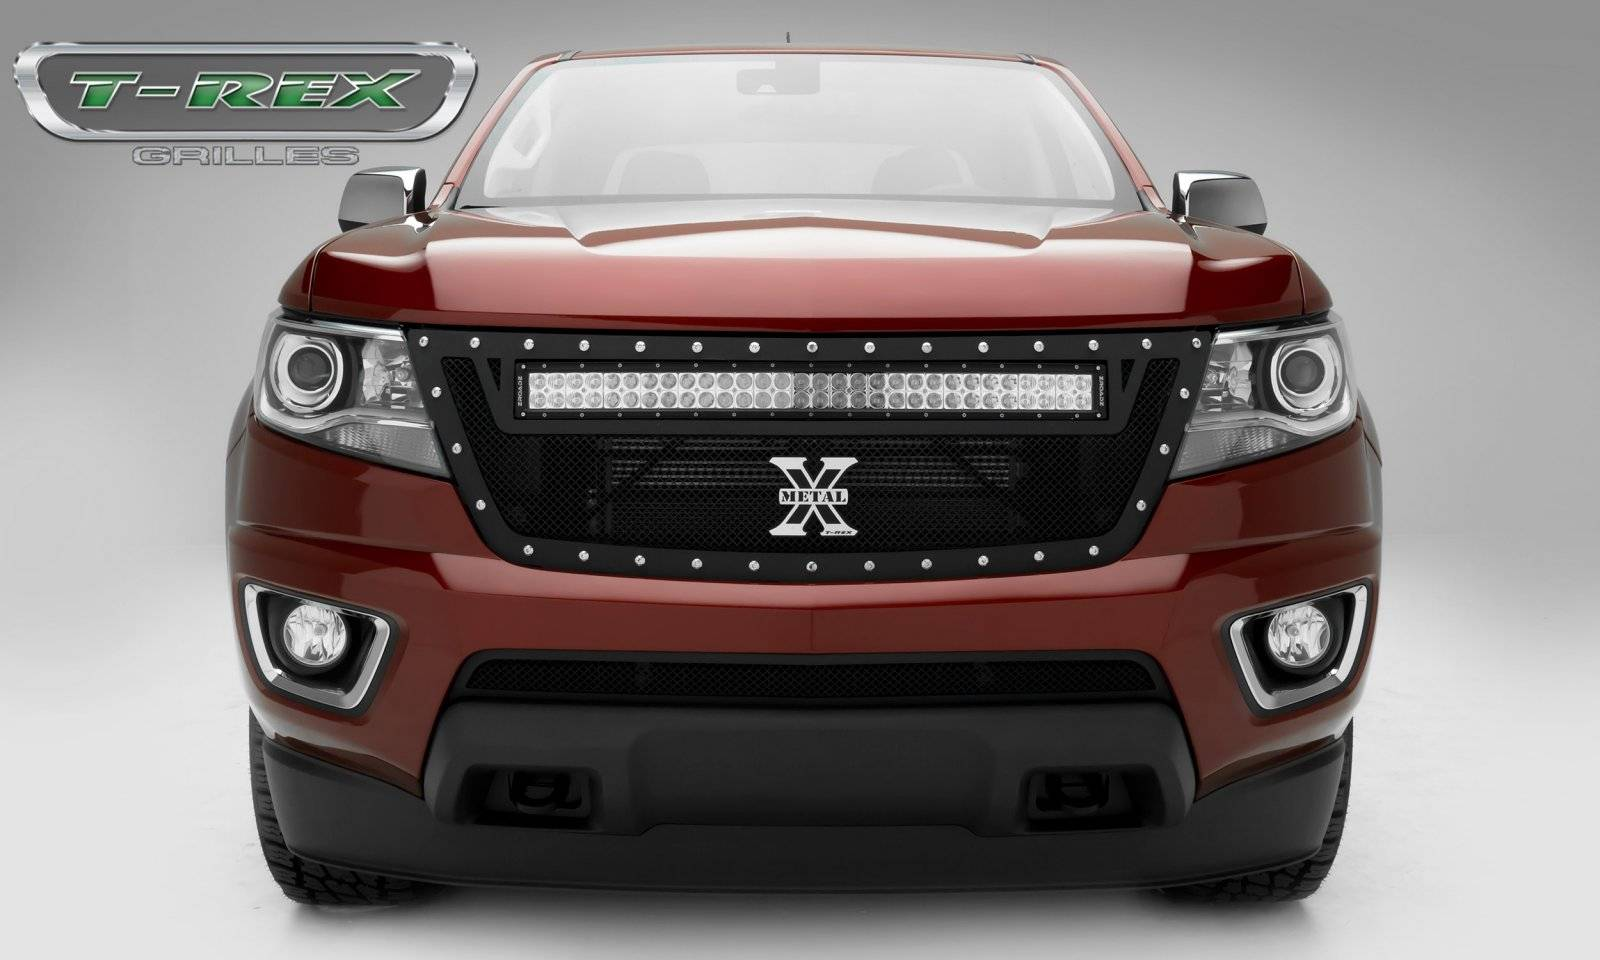 T rex chevrolet colorado torch series main grille replacement with 1 30 led light bar for off road use only pt 6312671